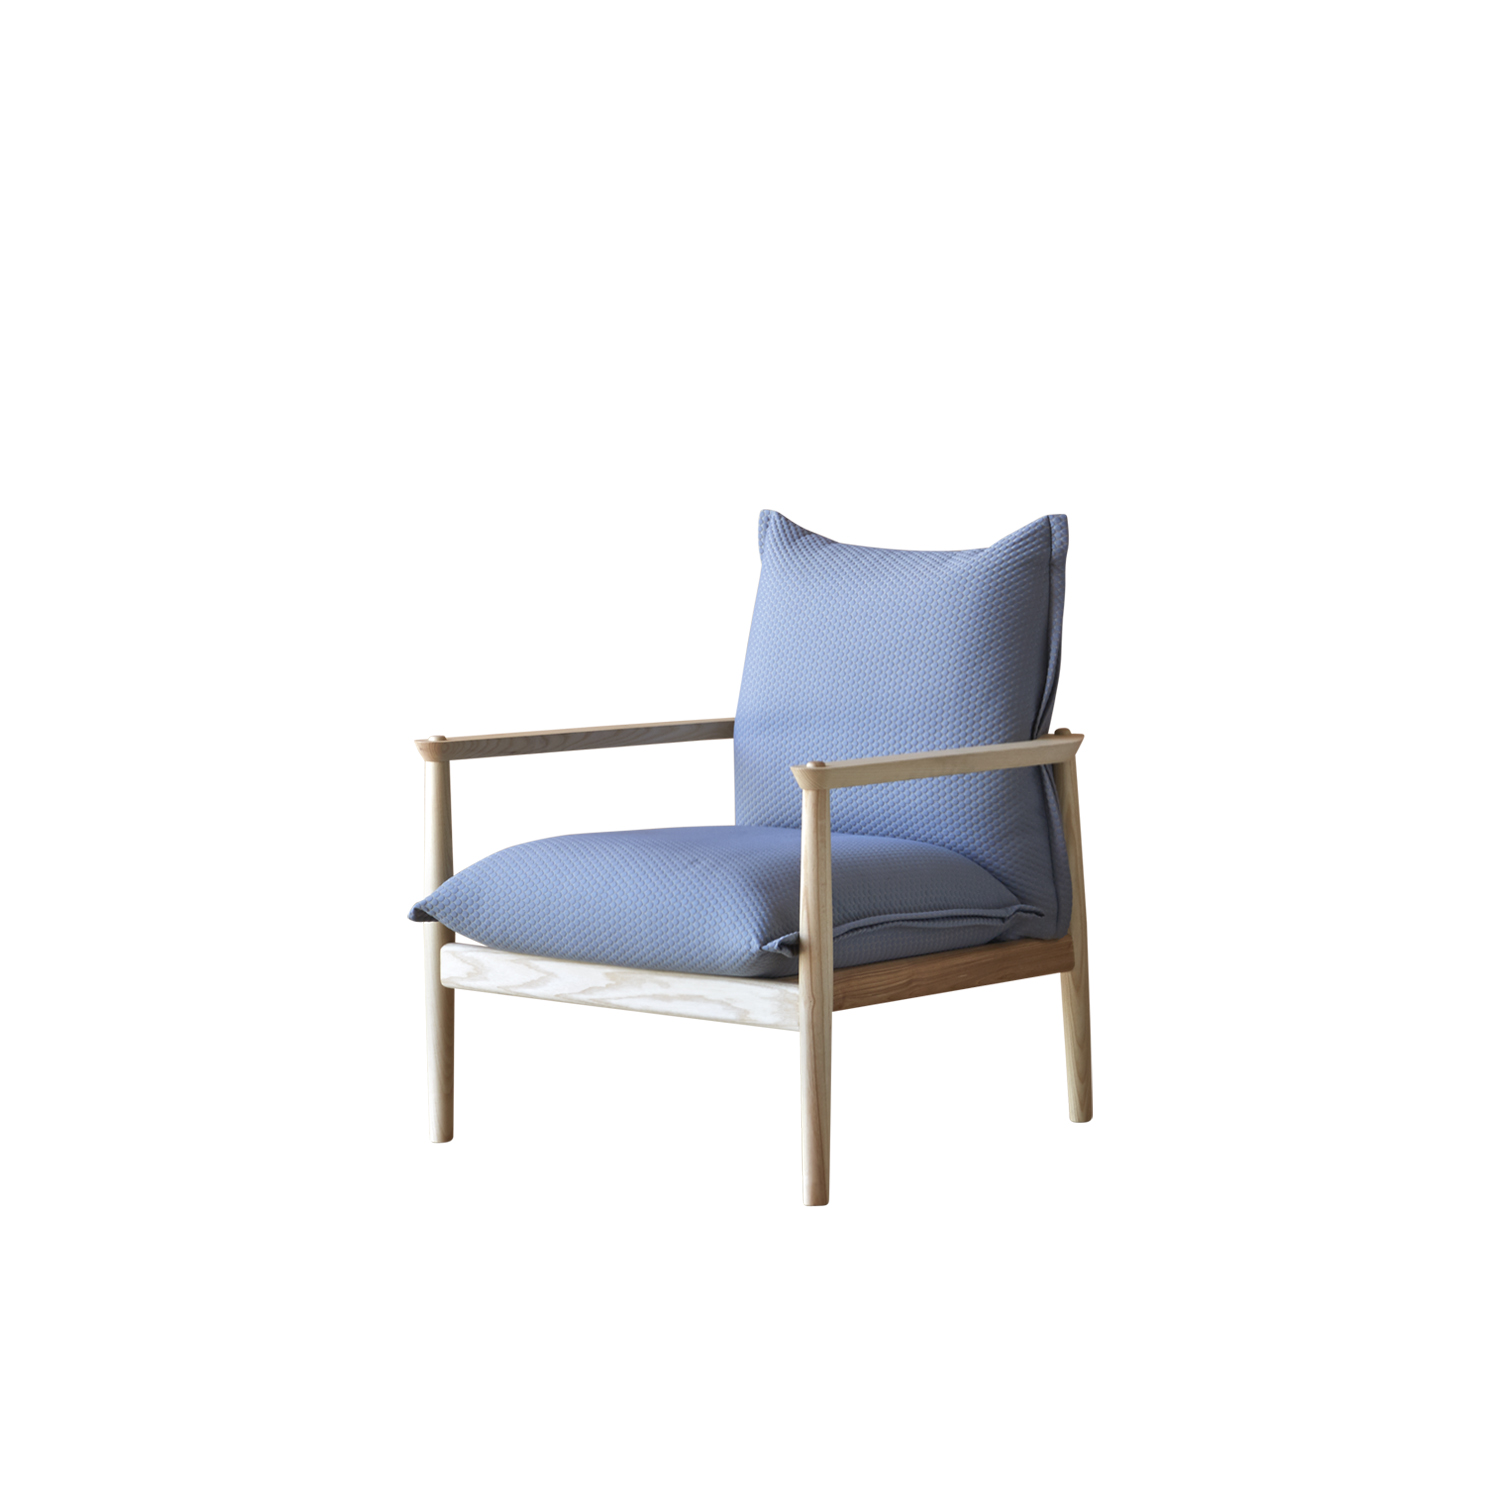 Sergia Armchair - Armchair with wooden base and frame in natural ash, ash stained walnut, black, grey, or intense blue aniline. The seat and the back consist of two cushions upholstered in the listed fabrics. 